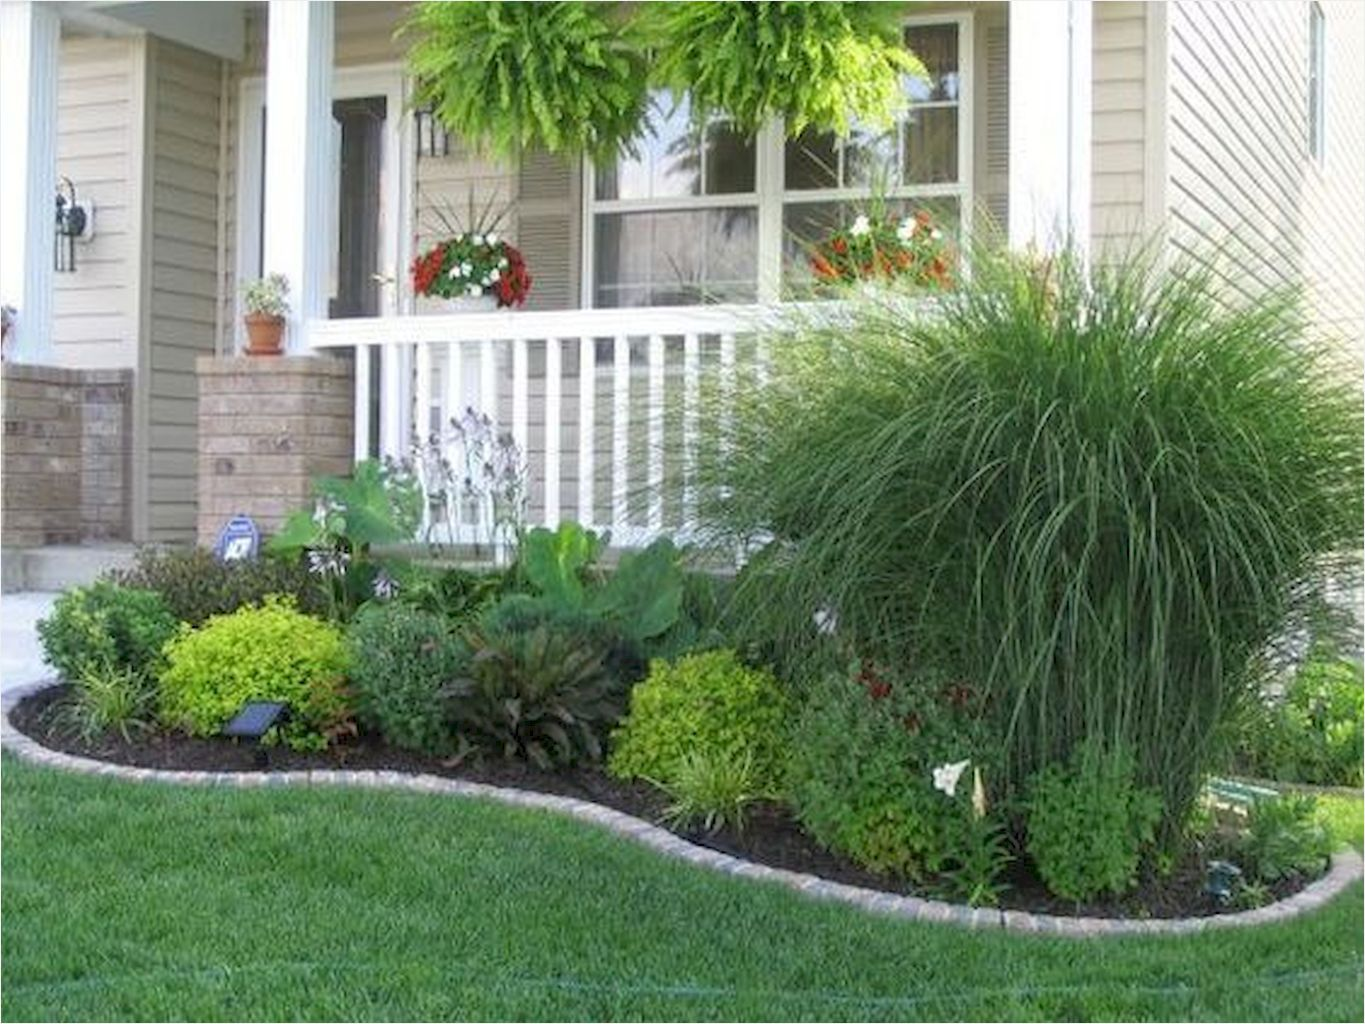 Small Front Yard Landscaping Ideas On A Bud 61 Advanced Ideas For Landscaping Backyard In 2020 Cheap Landscaping Ideas Porch Landscaping Front Yard Landscaping Design